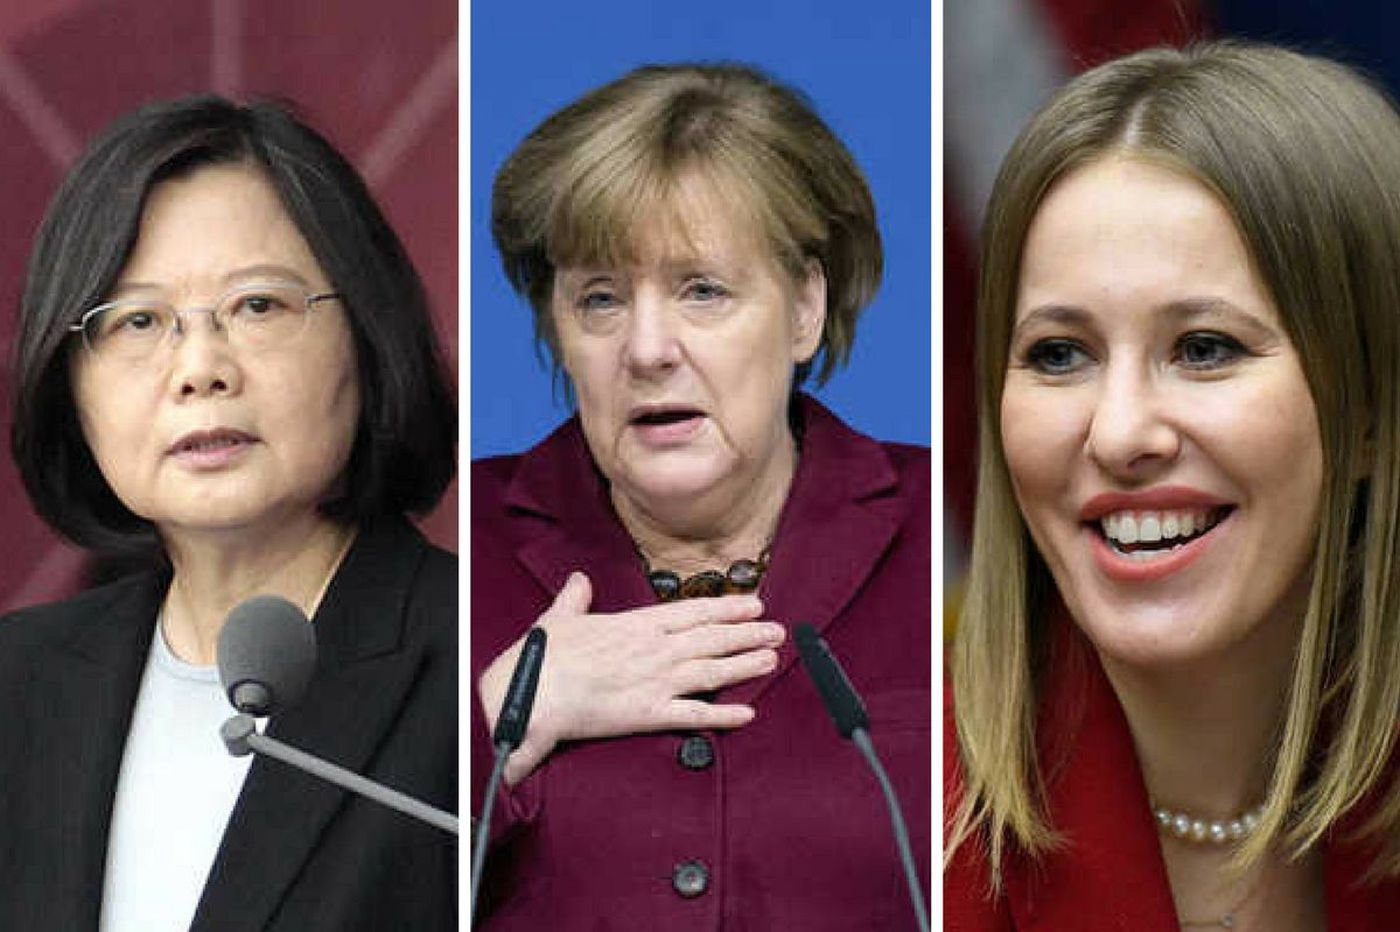 Looking for female political leaders during Women's History Month? The list is small. | Trudy Rubin